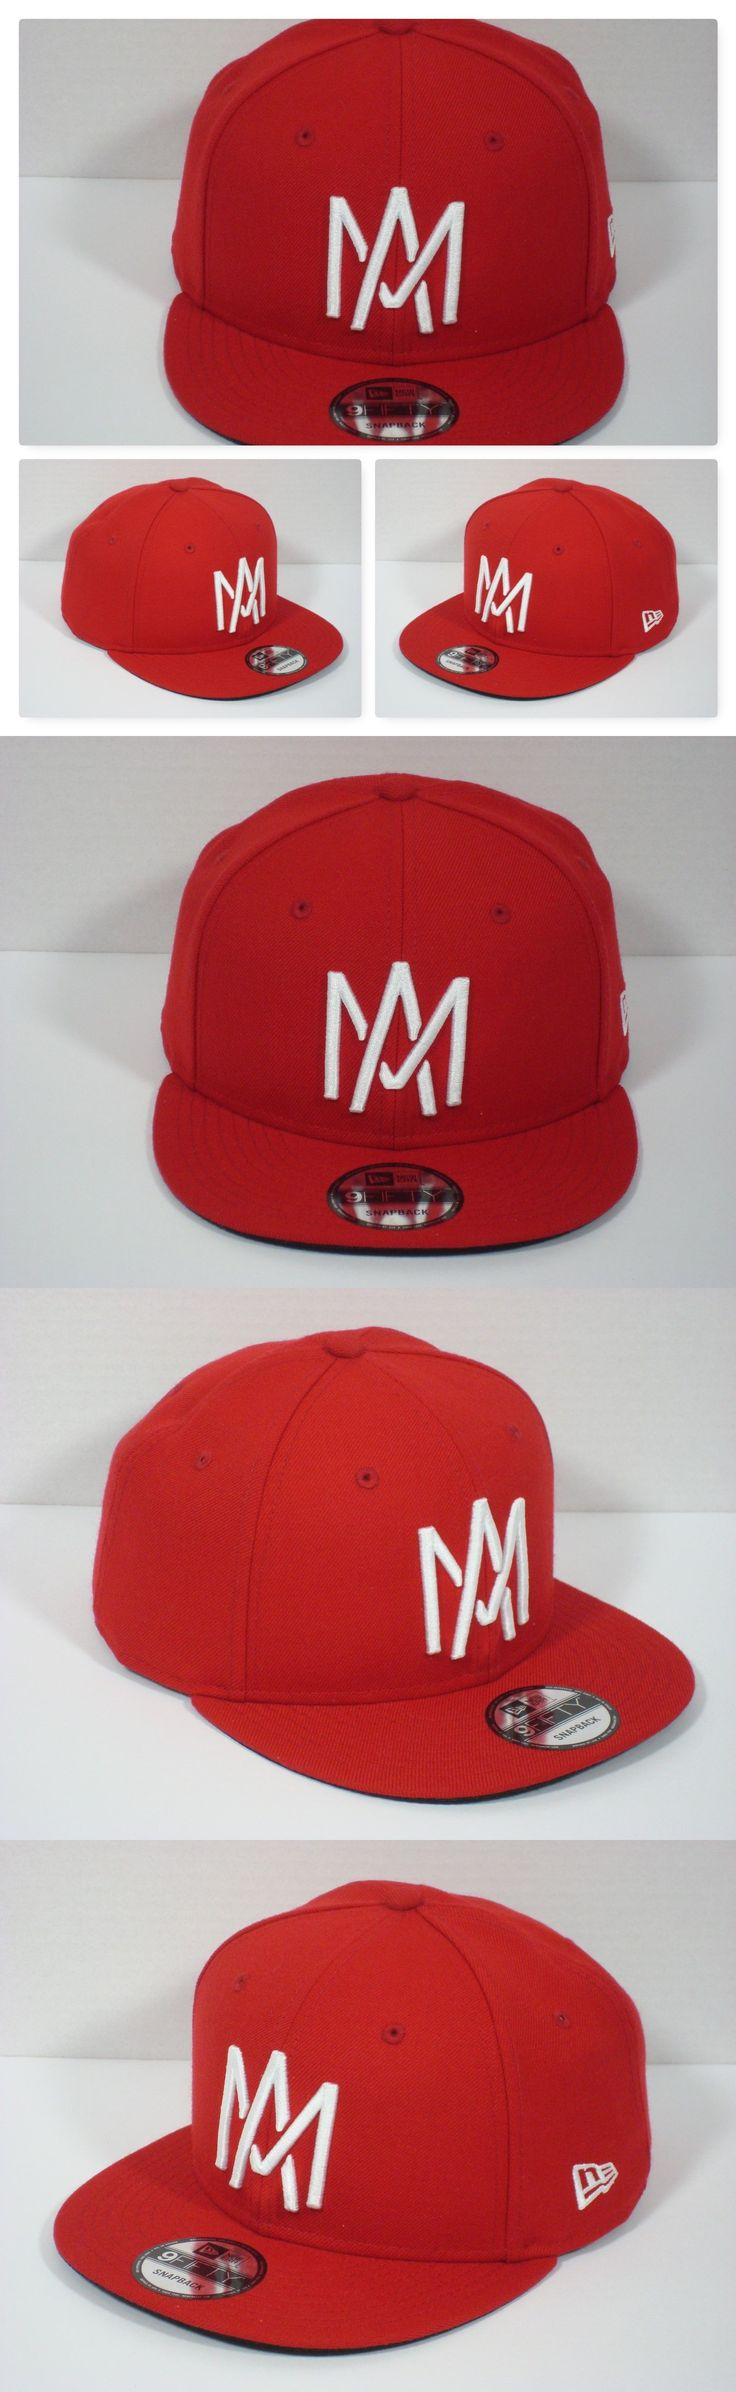 Baseball-Other 204: Las Aguilas De Mexicali 9Fifty Snapback (Official) -> BUY IT NOW ONLY: $30.99 on eBay!